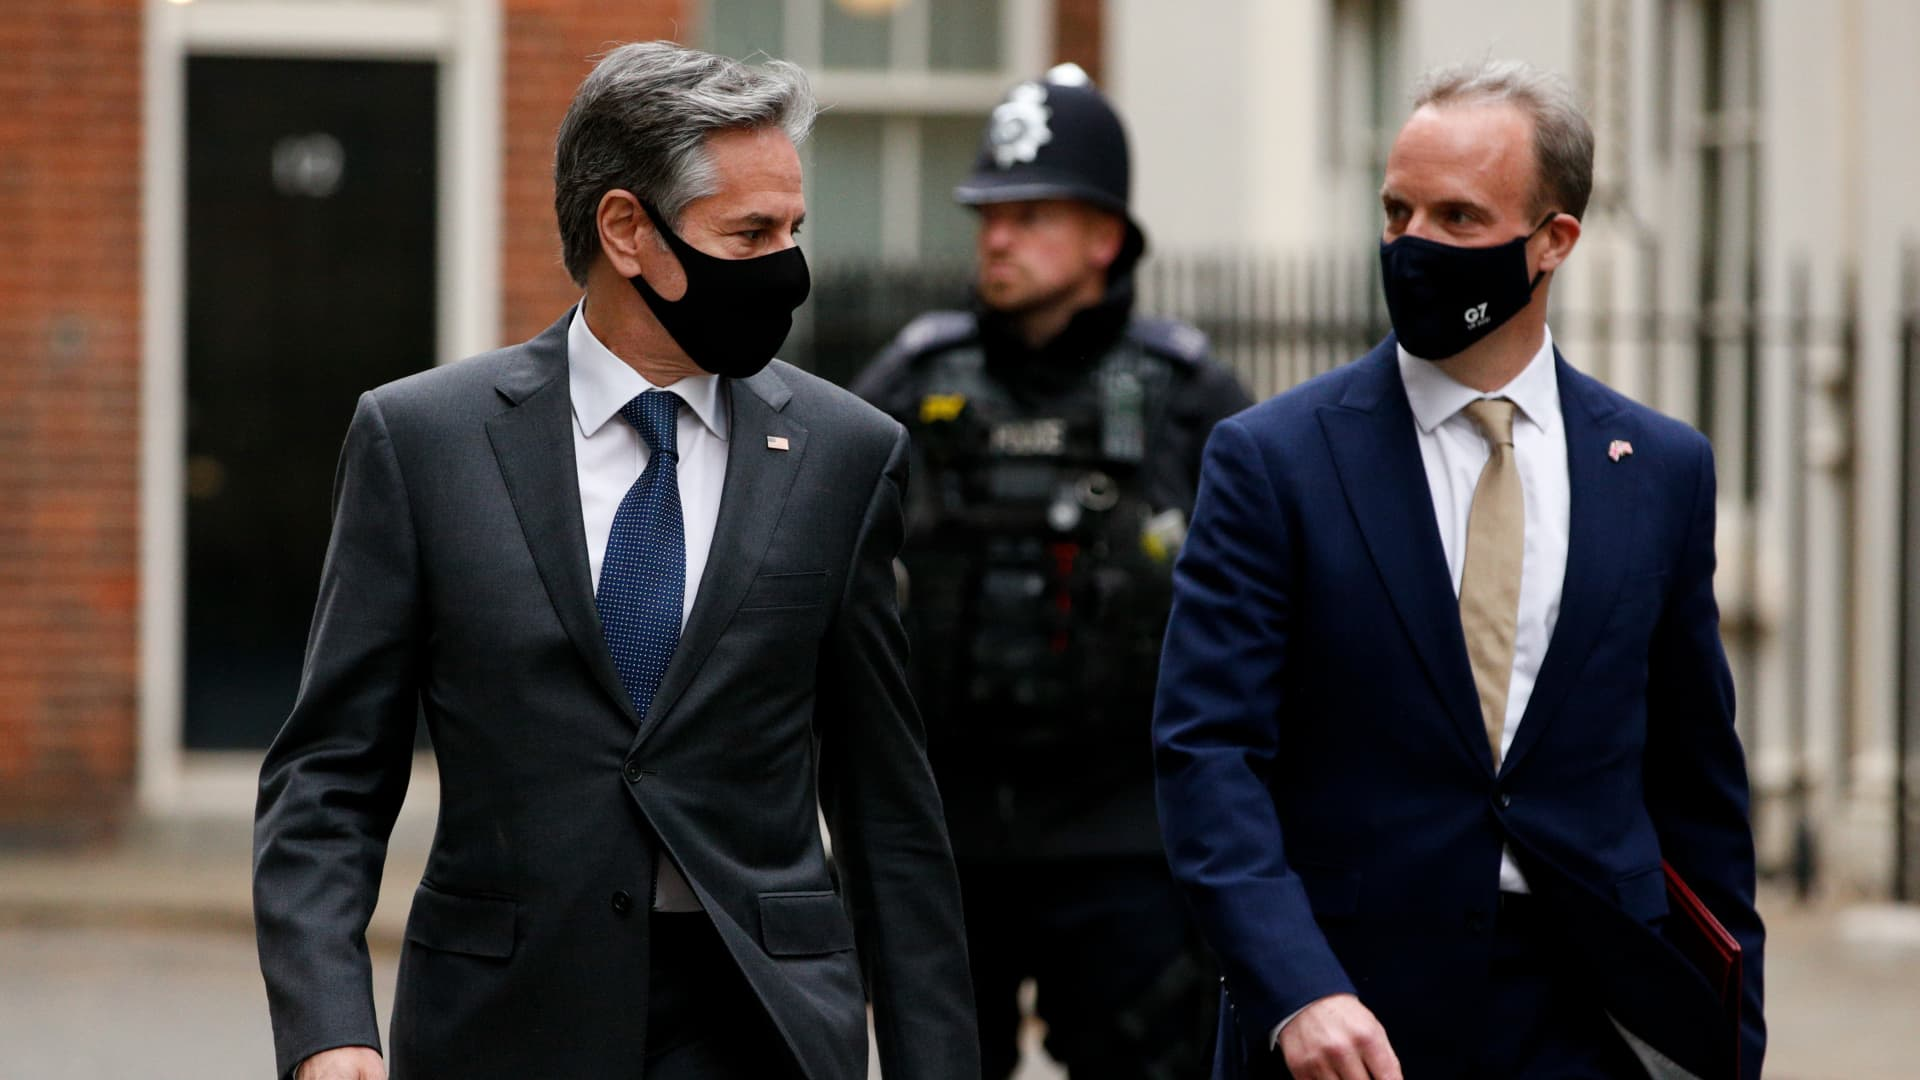 U.S. Secretary of State Antony Blinken (L) and British Foreign Secretary Dominic Raab (R) walk along Downing Street in London, United Kingdom on May 03, 2021.